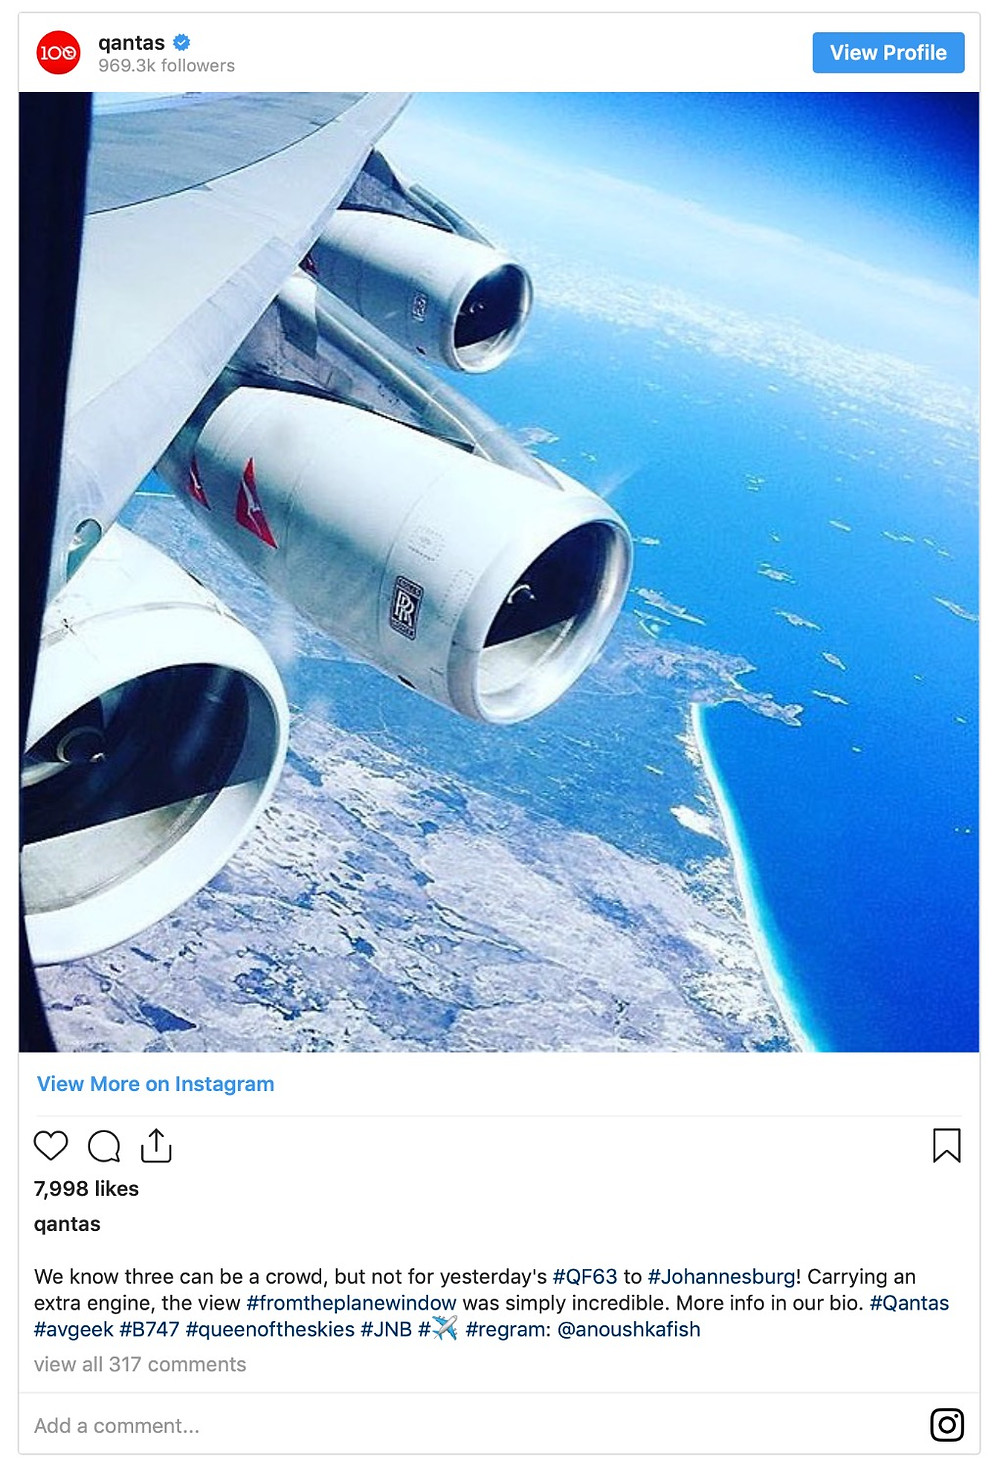 A Qantas Boeing 747 flying with five engines?!